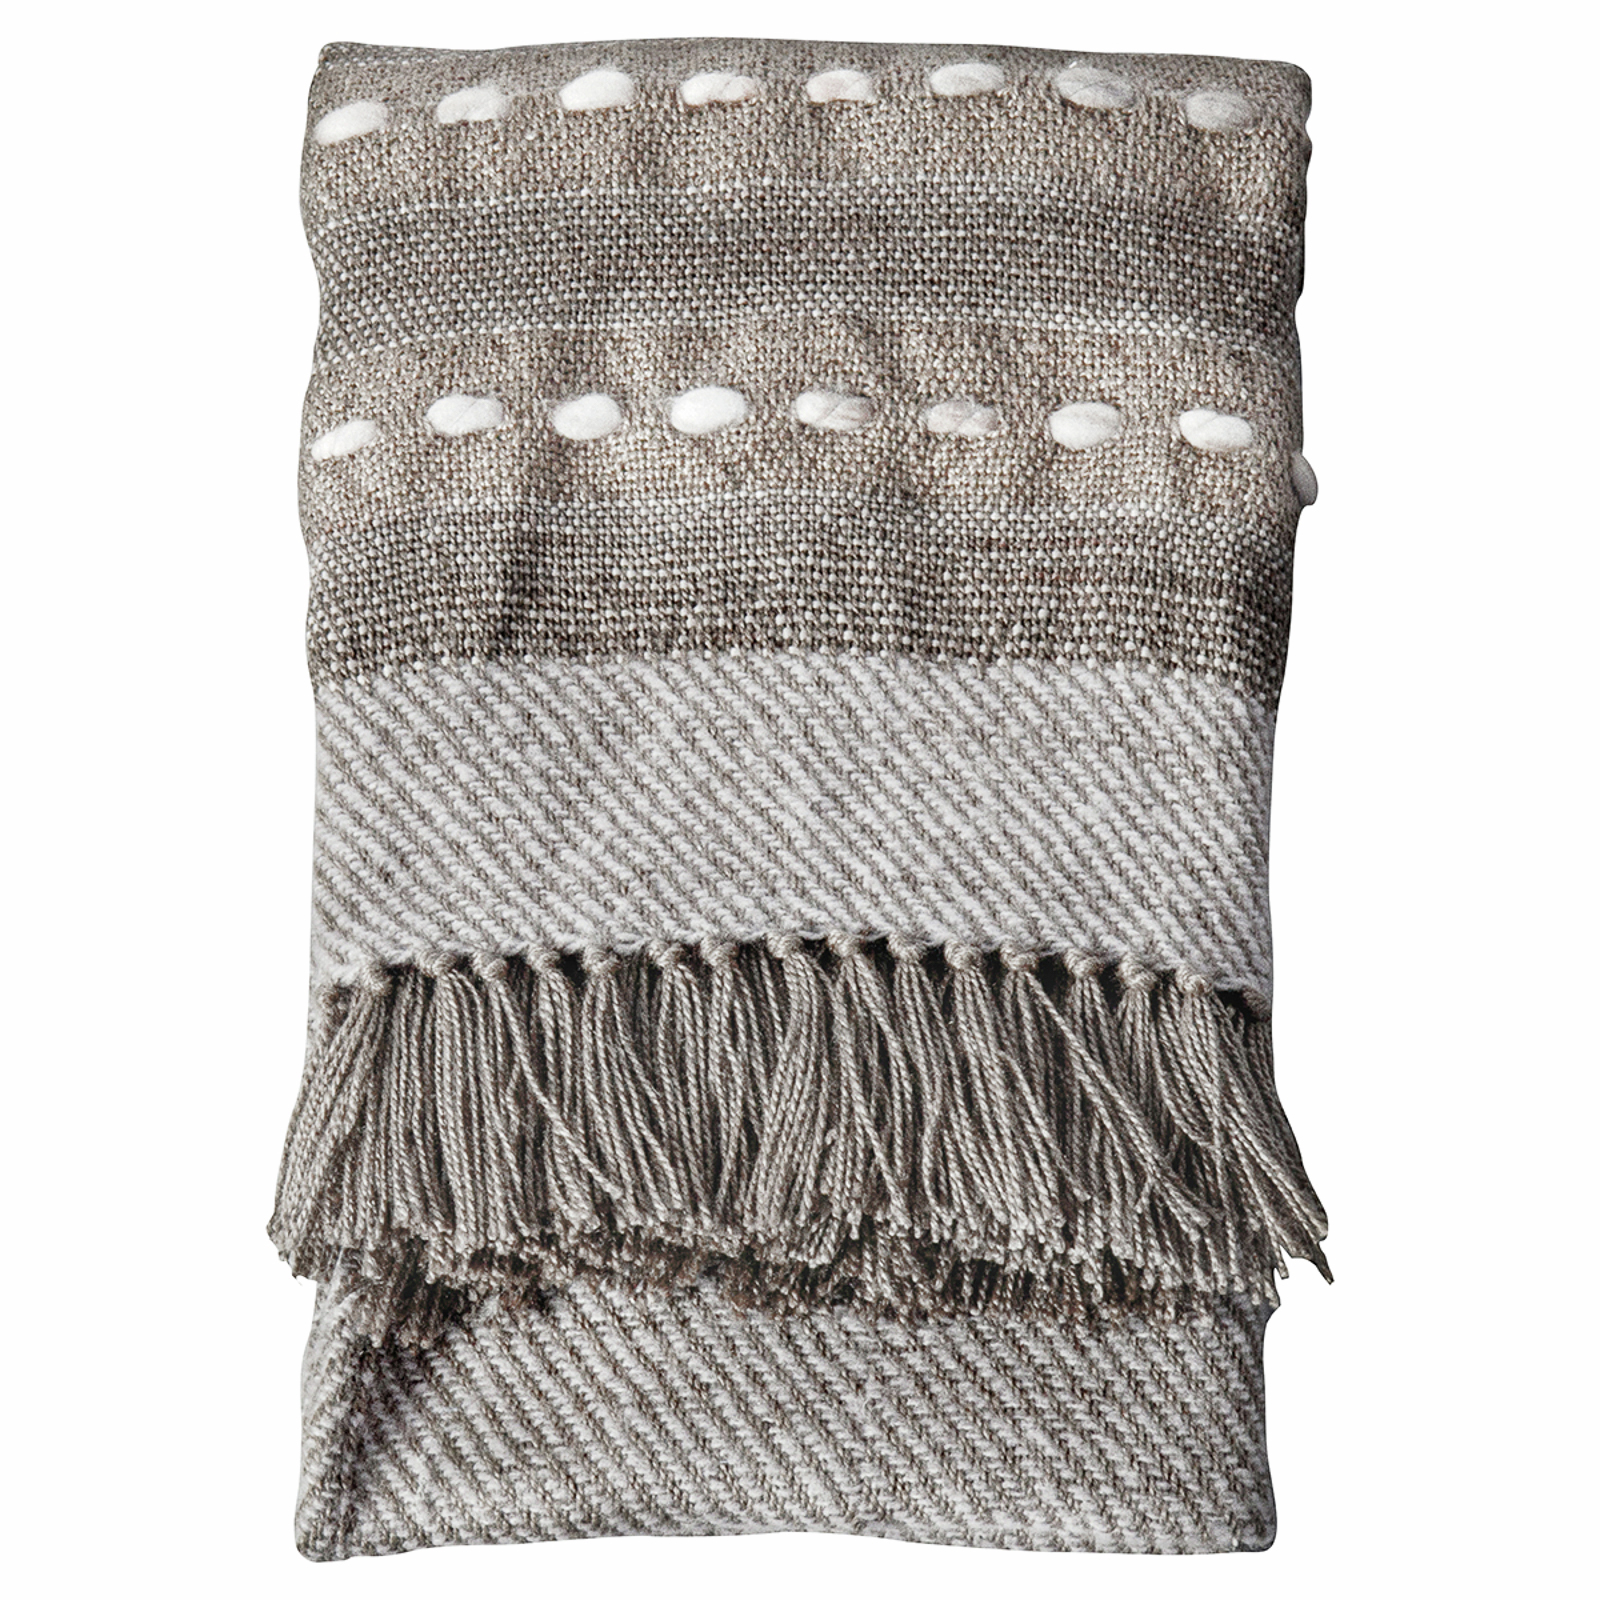 Natural Hand Embellished Throw